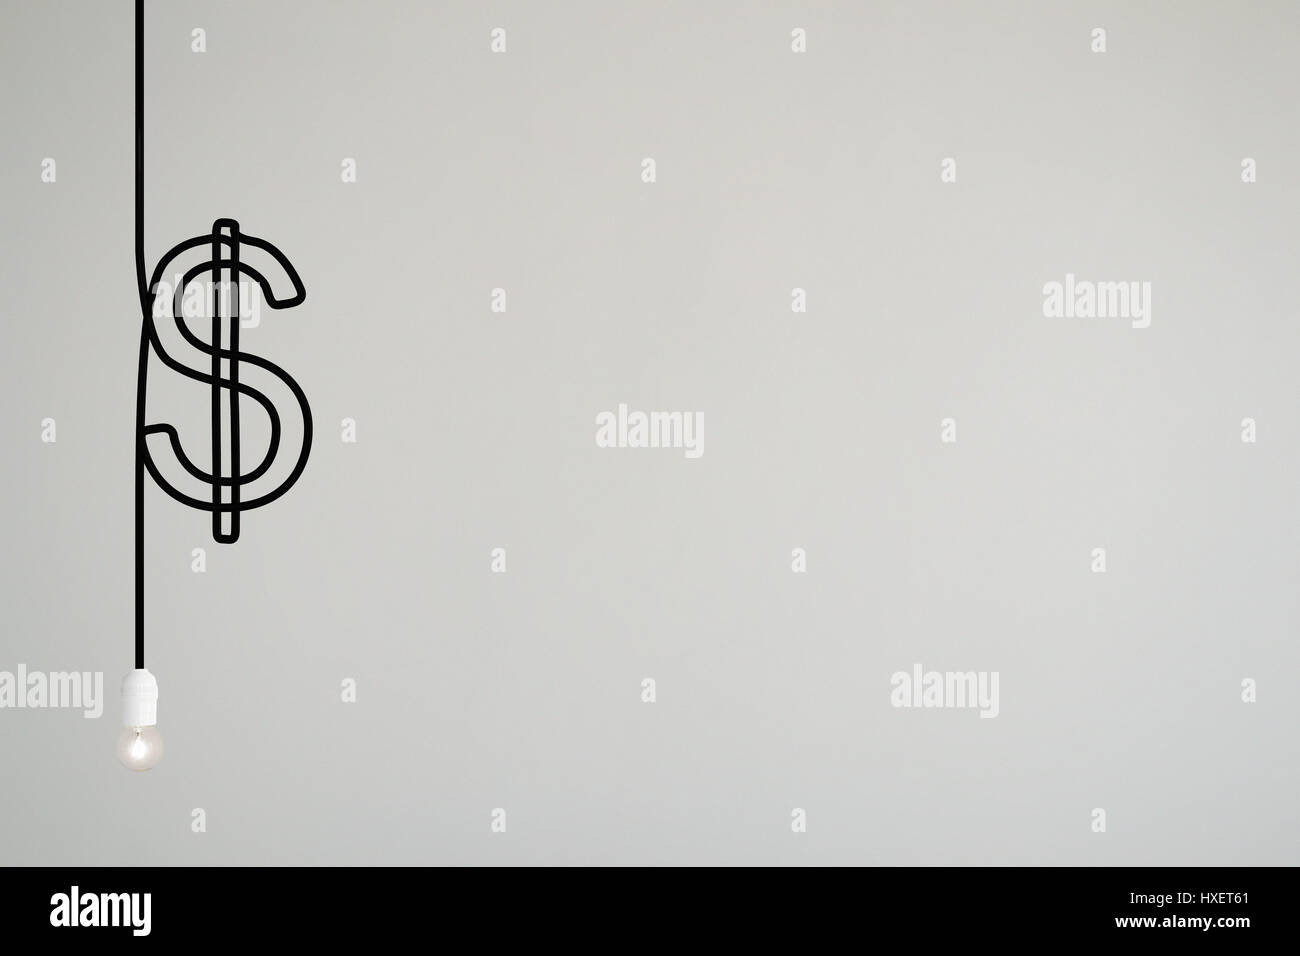 A lamps's electrical cable draws a dollar symbol - Stock Image